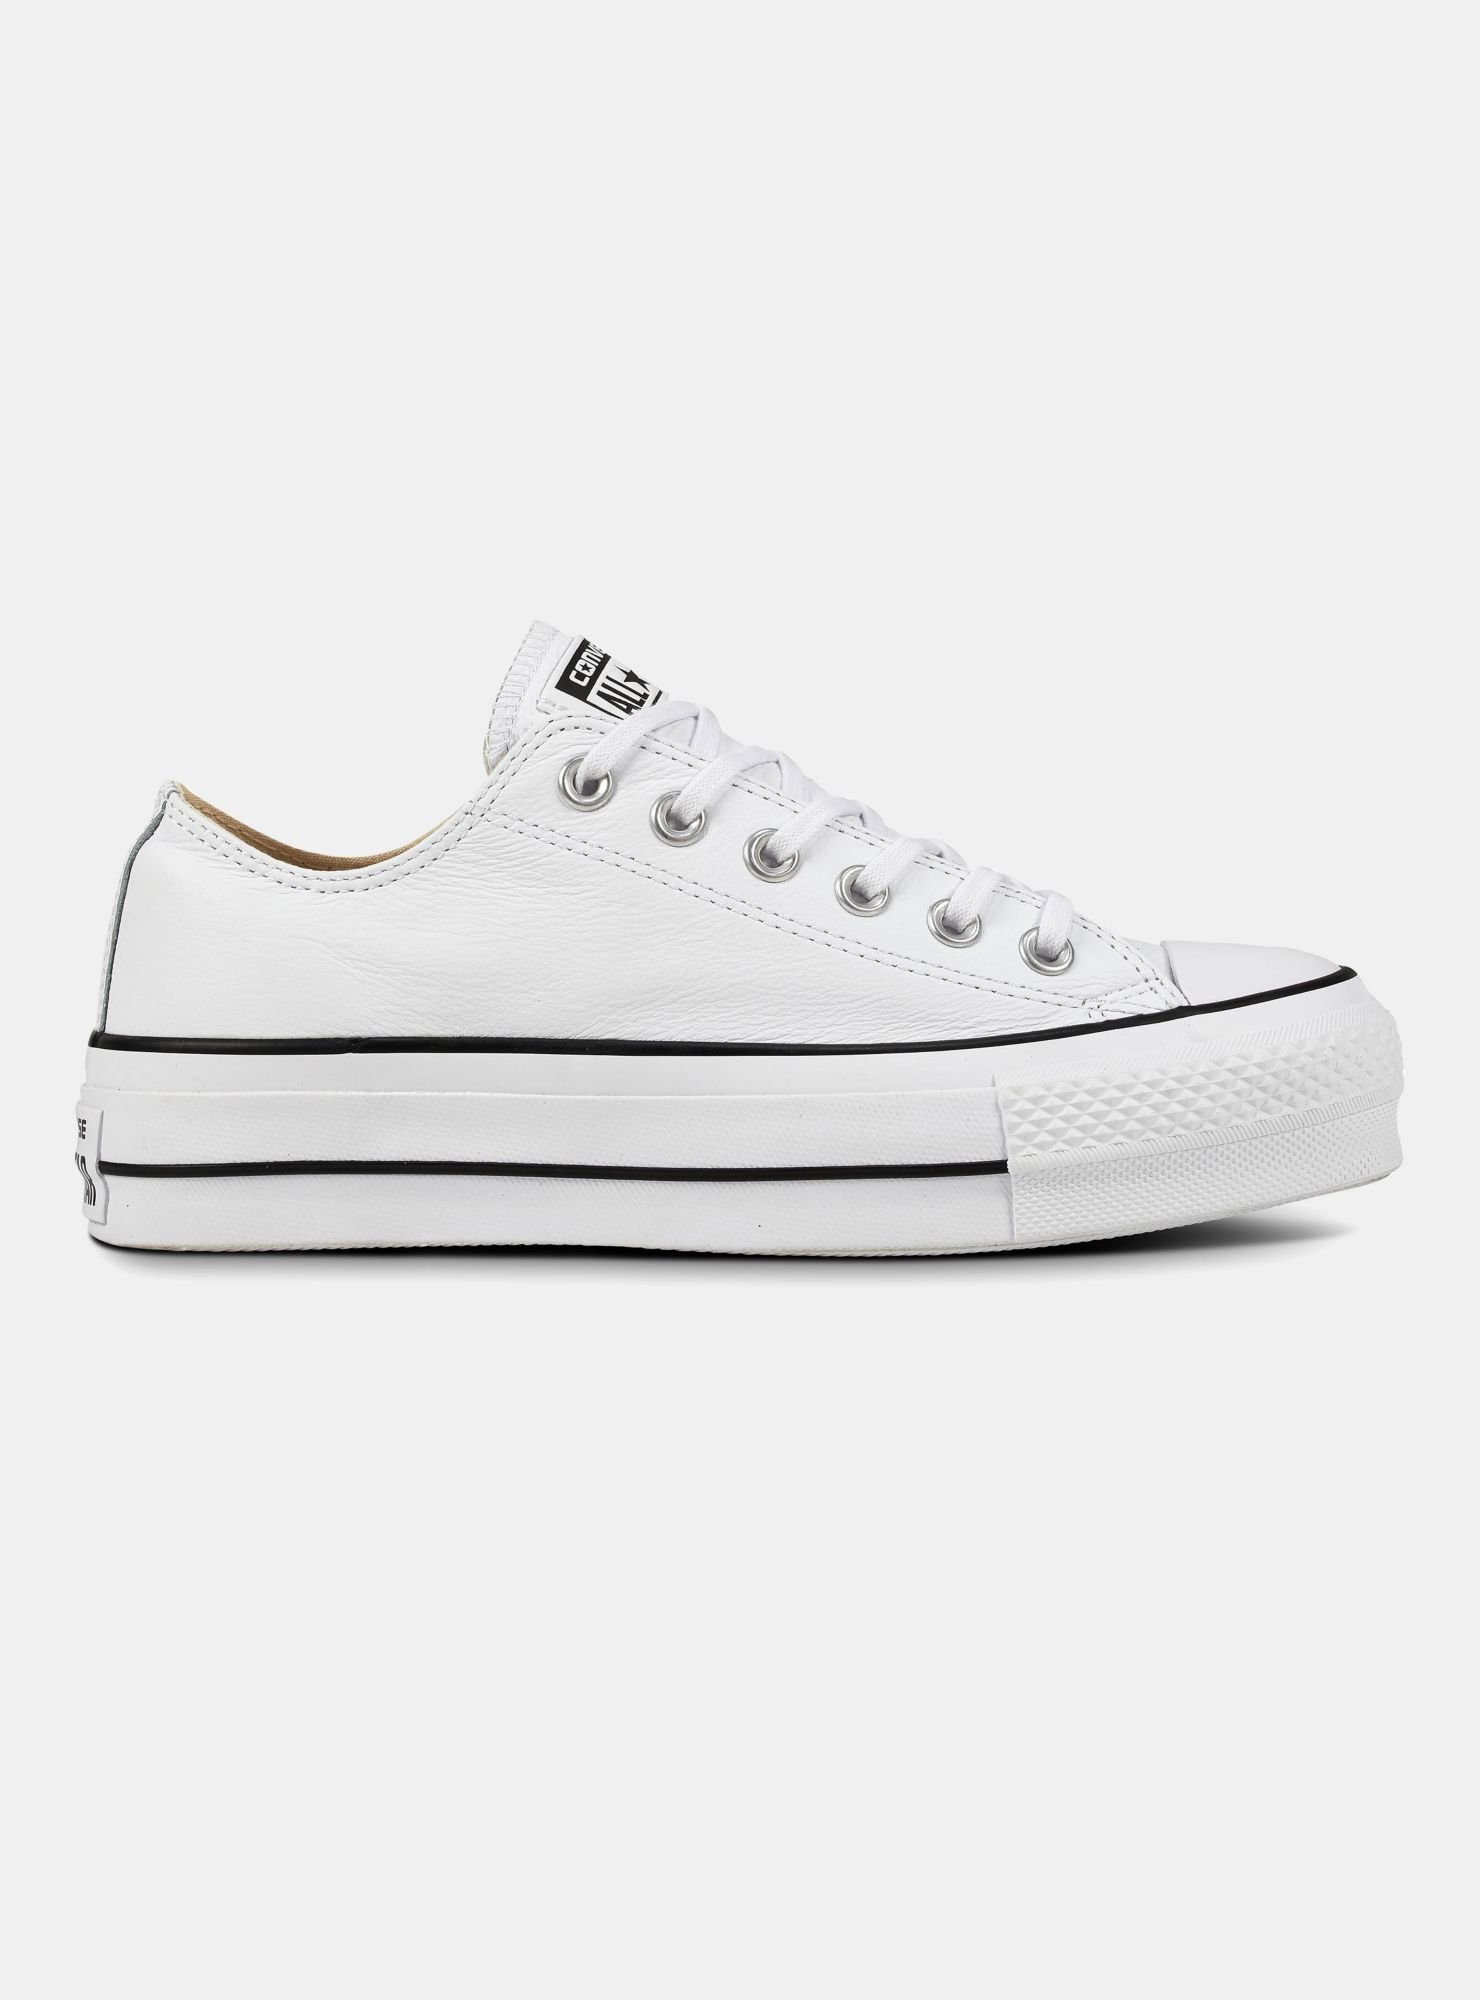 Detalles de Zapatos Converse Chuck Taylor All Star Clean Lift Low Top 565501C 9W